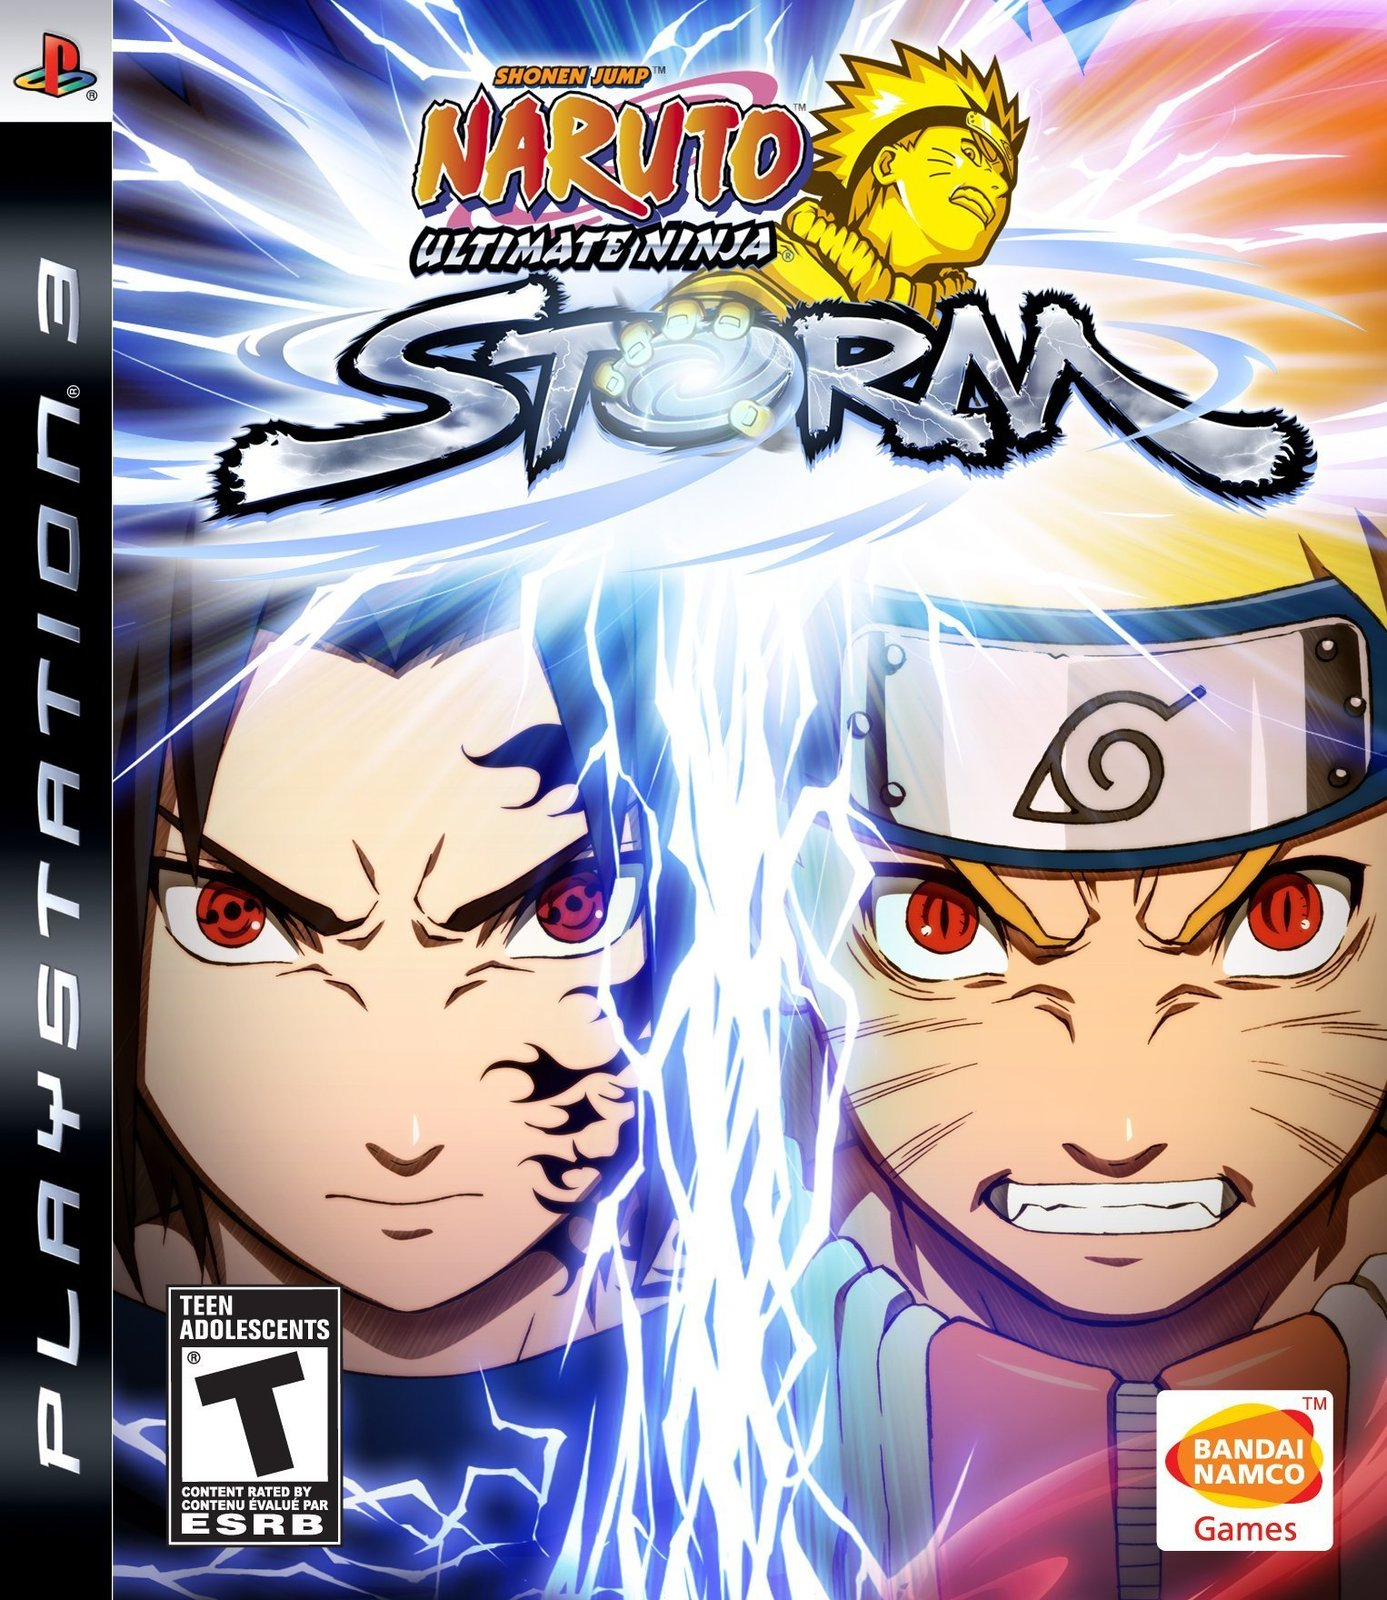 Naruto: Ultimate Ninja Storm | Narutopedia | FANDOM powered